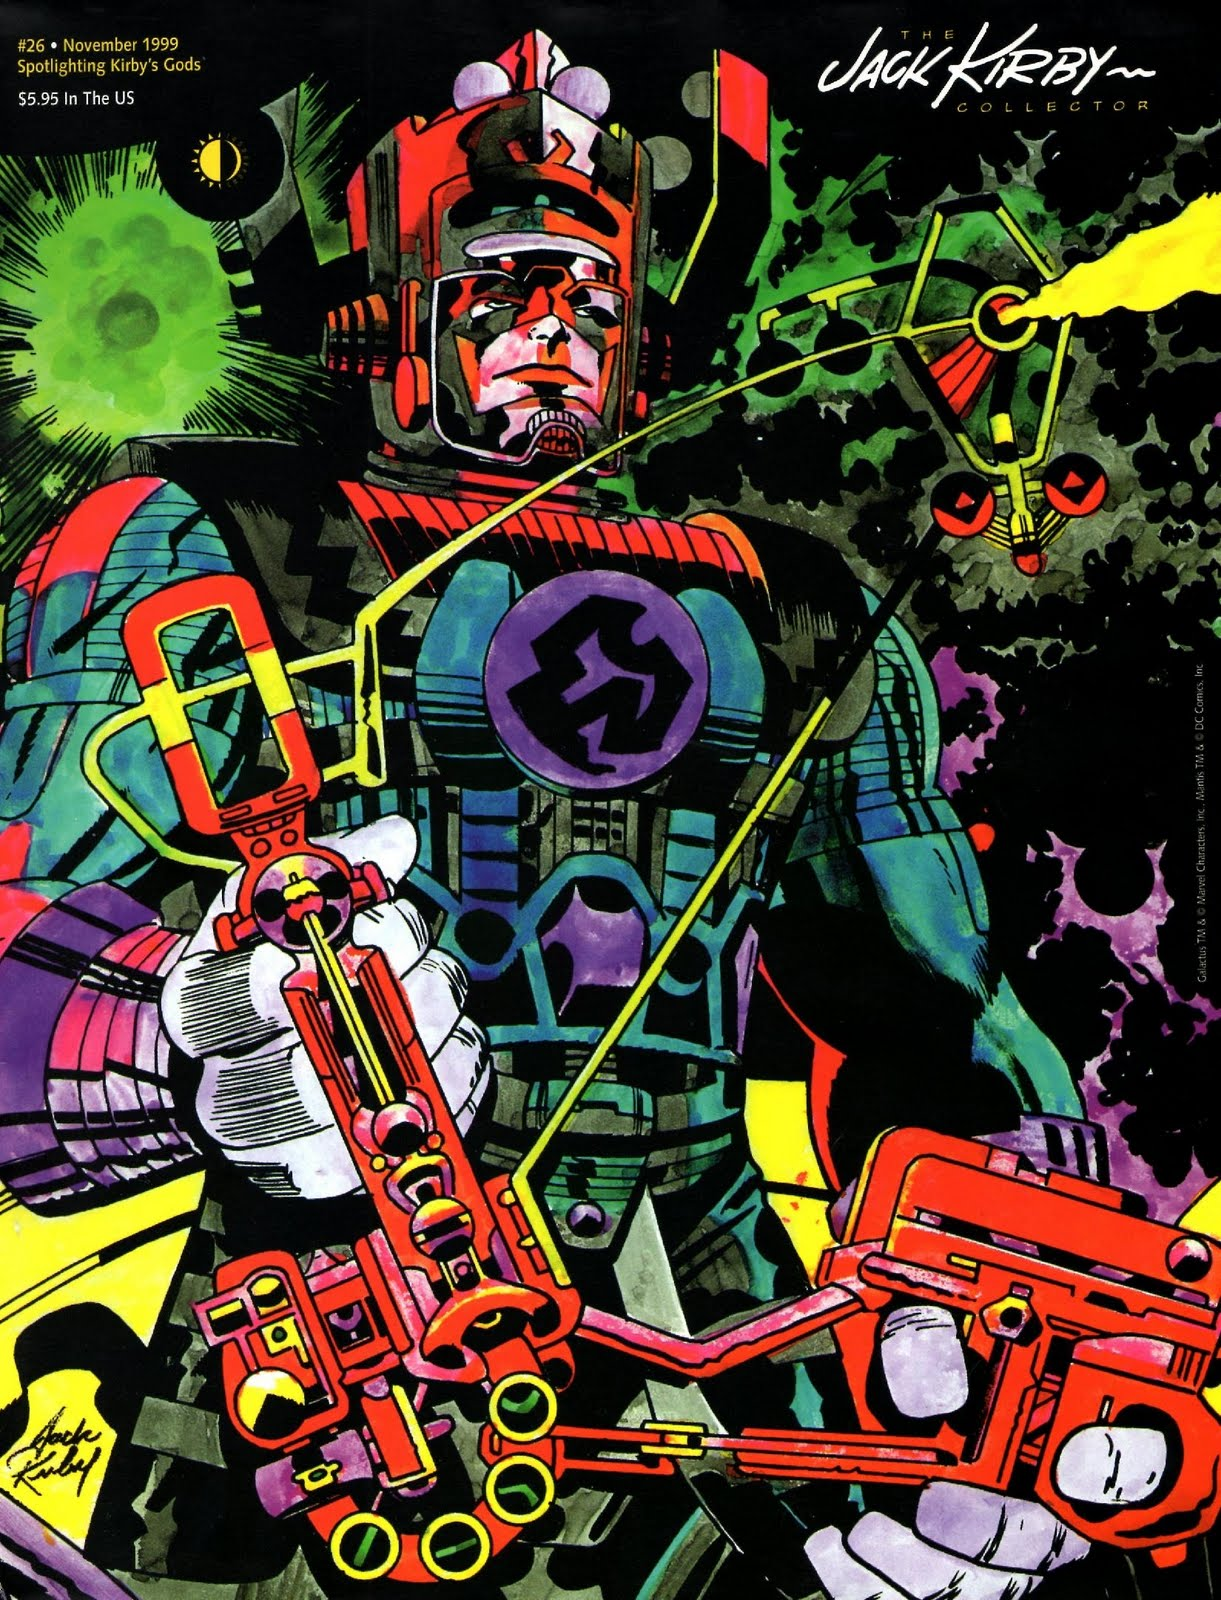 Cap'n's Comics: Some Jack Kirby